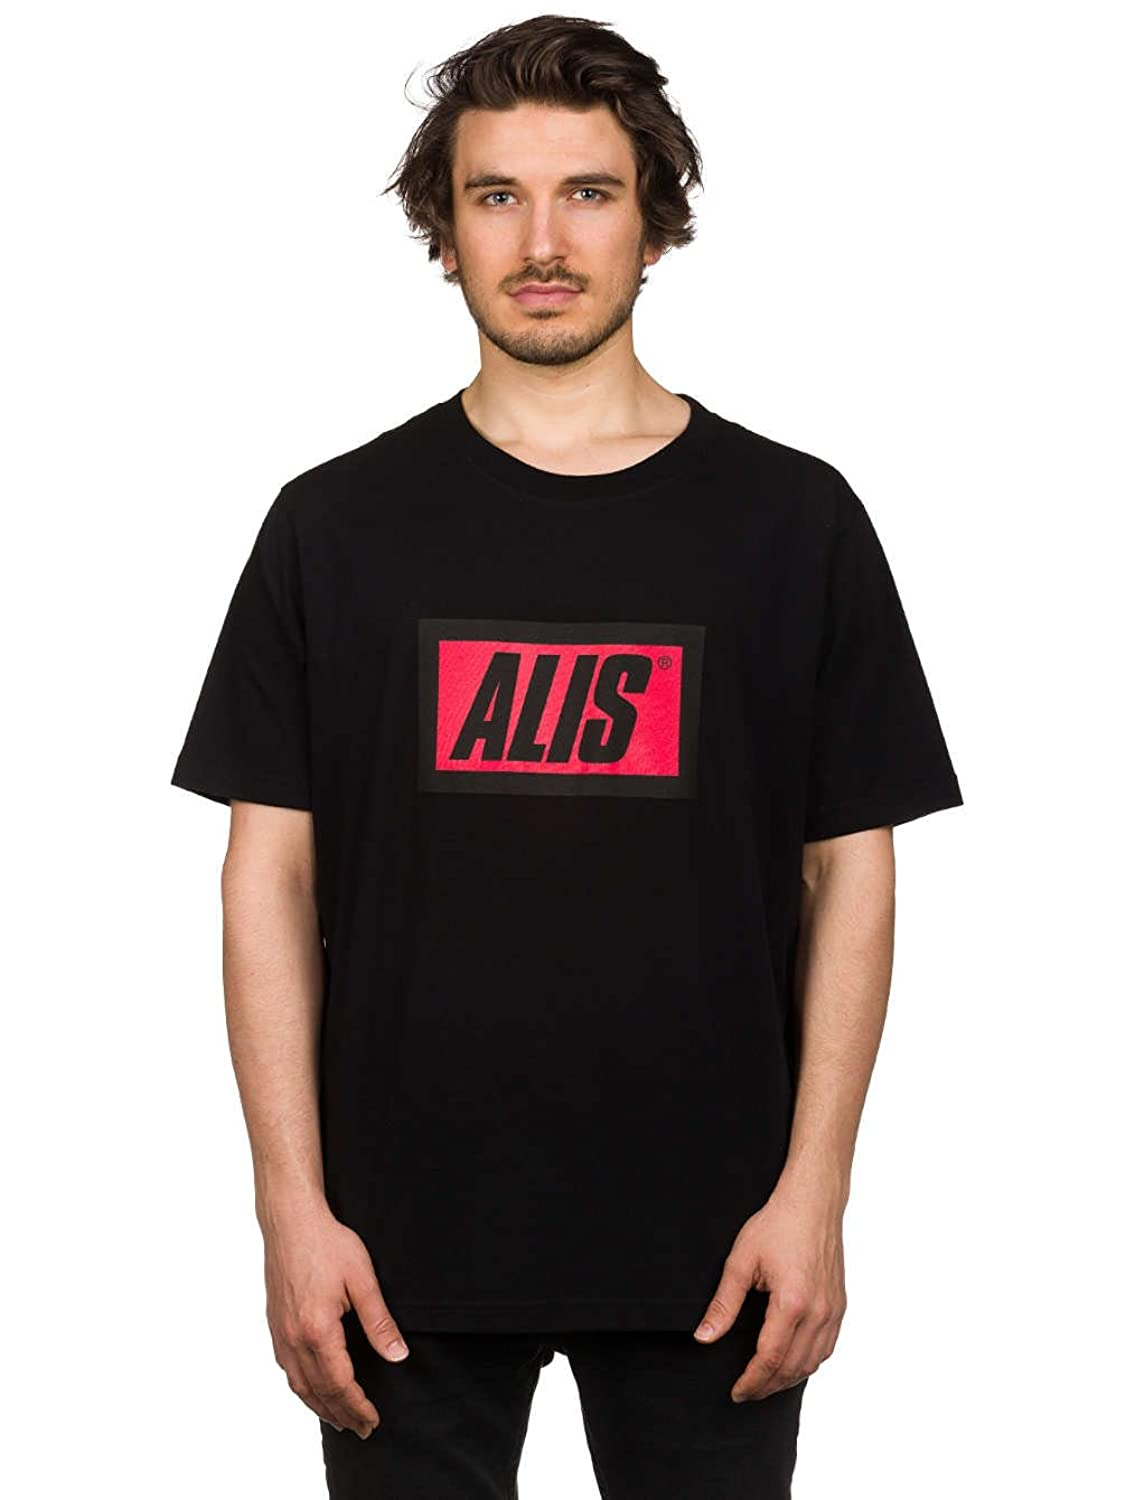 T-Shirt Men ALIS Classic Box T-Shirt